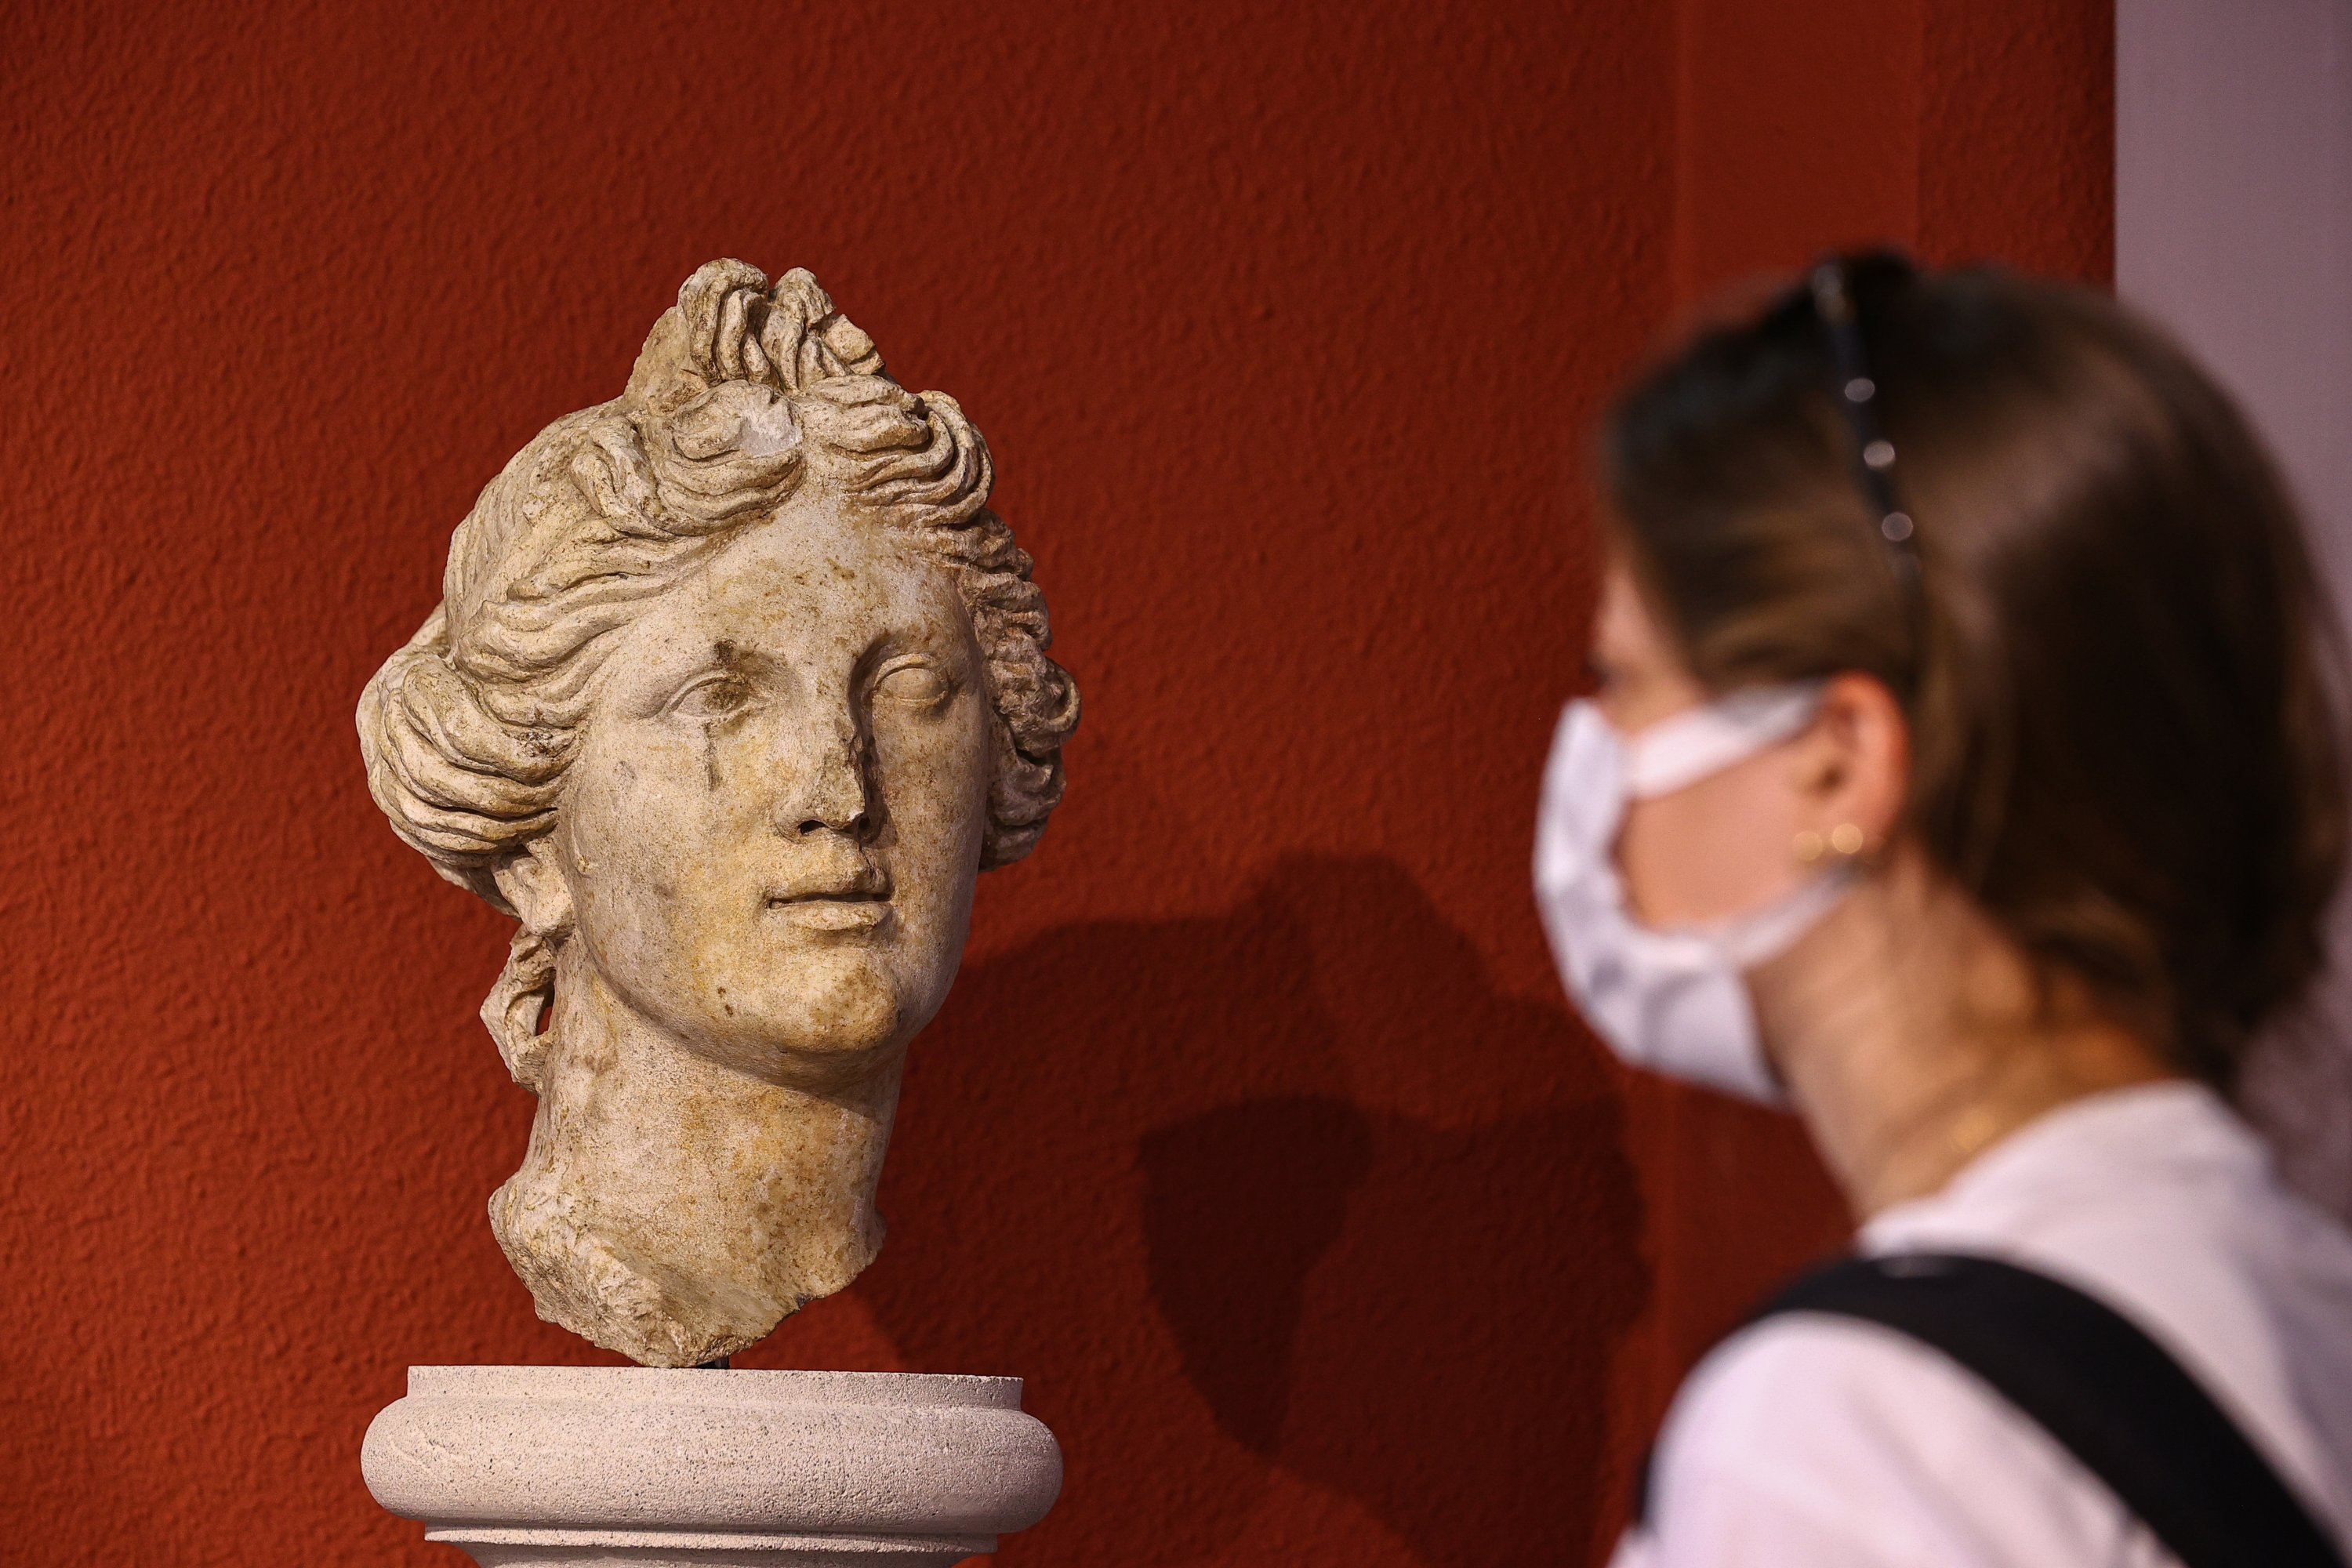 A visitor examines the head of a woman, which was the first statue found in Smyrna, at Izmir Archaeological Museum, Izmir, western Turkey, June 30, 2021. (AA Photo)